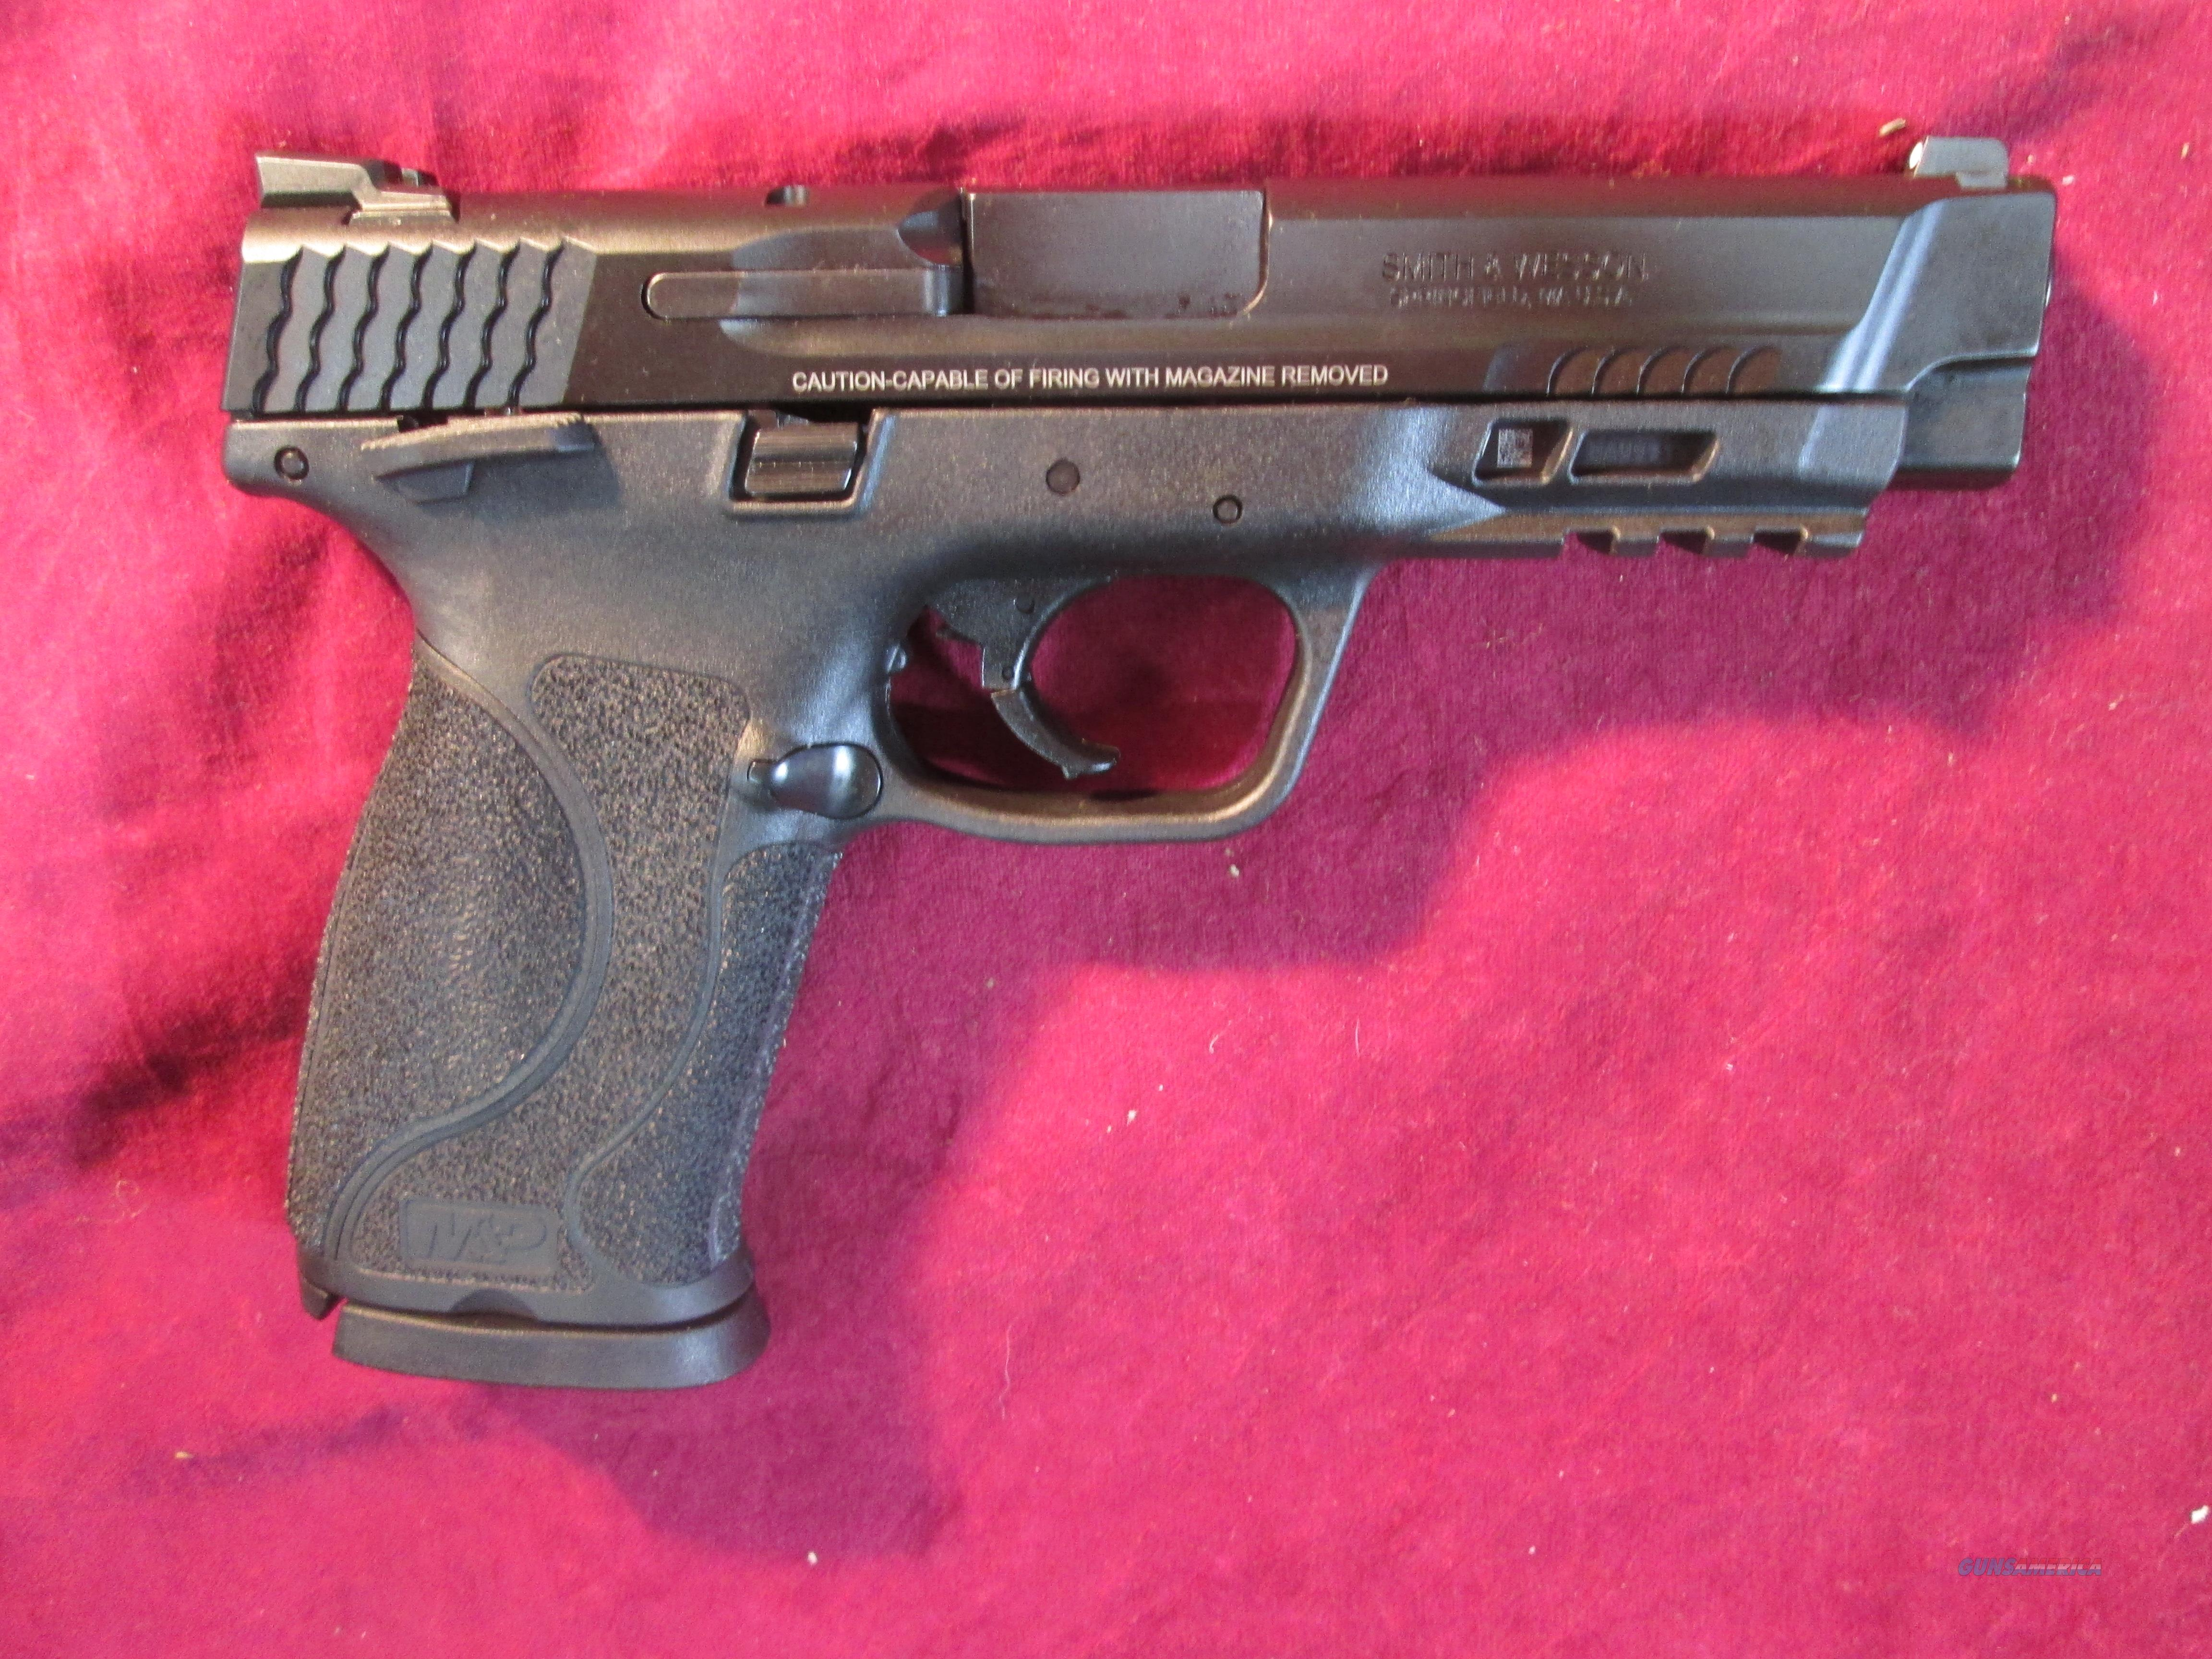 "SMITH AND WESSON M&P 2.0 .45ACP BLACK 4.6"" W/ SAFETY NEW (11526)   Guns > Pistols > Smith & Wesson Pistols - Autos > Polymer Frame"